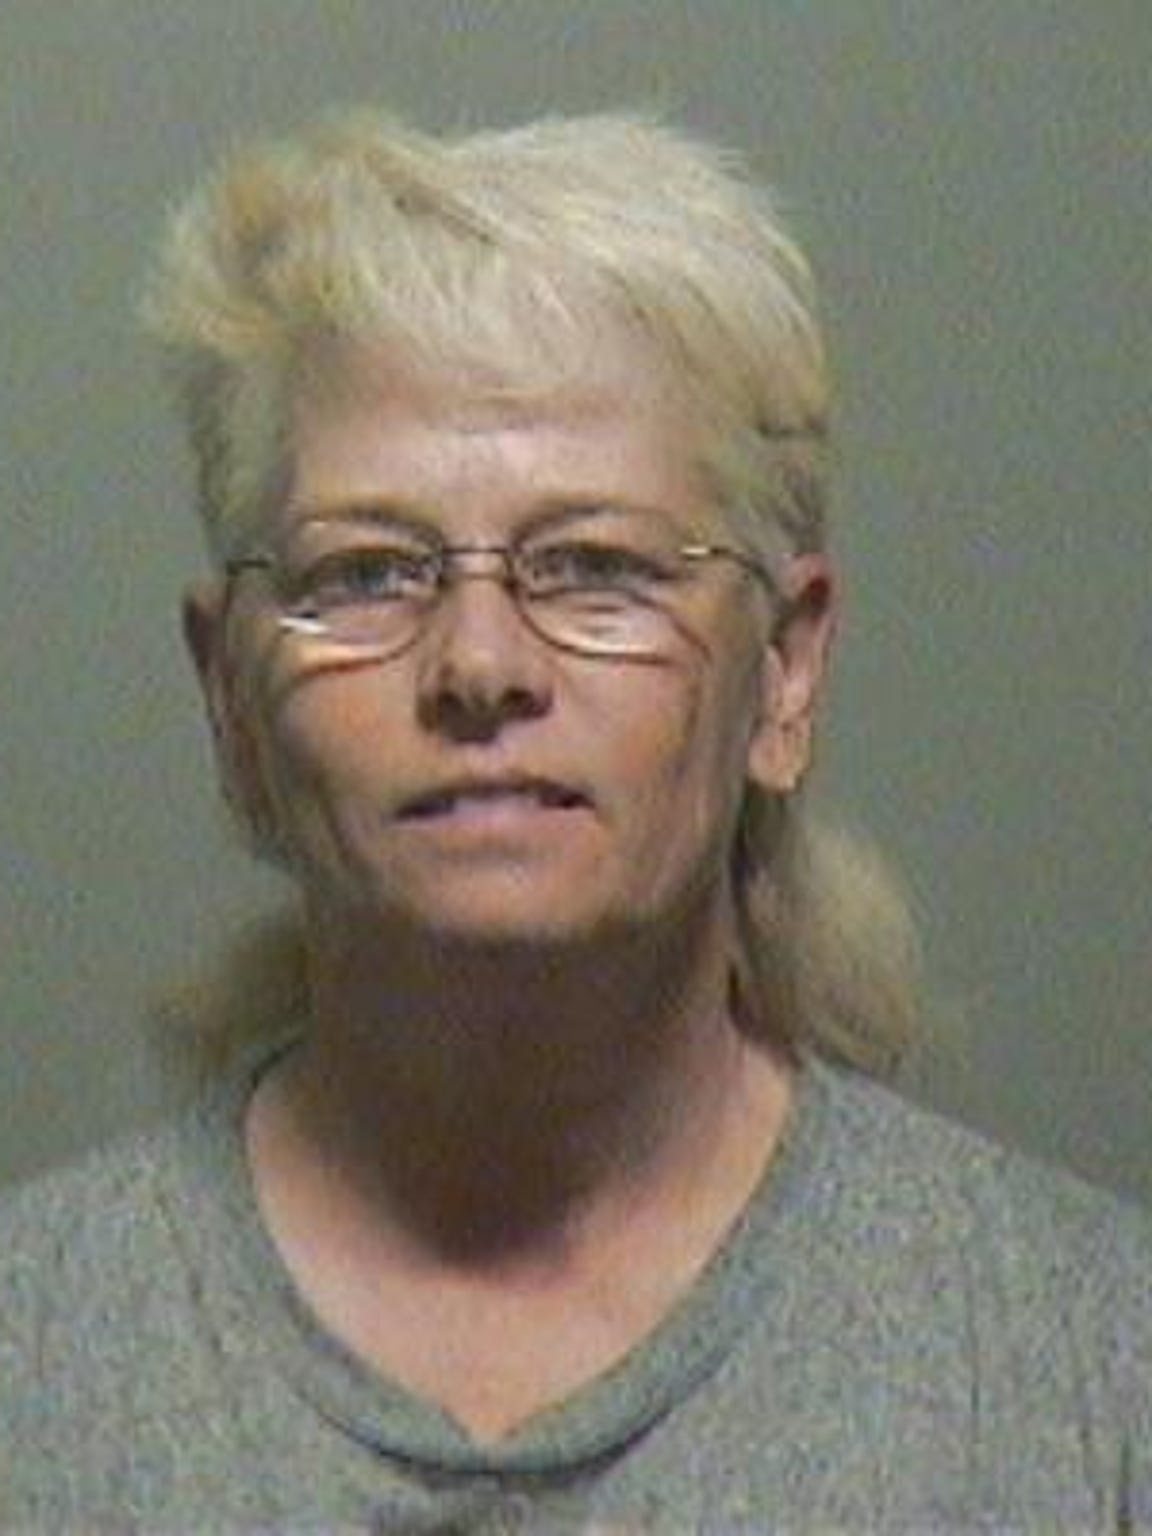 Dianna Siveny was 48 years old when her domestic partner of nine years, Lara Plamann, was slain on their property in 2007.